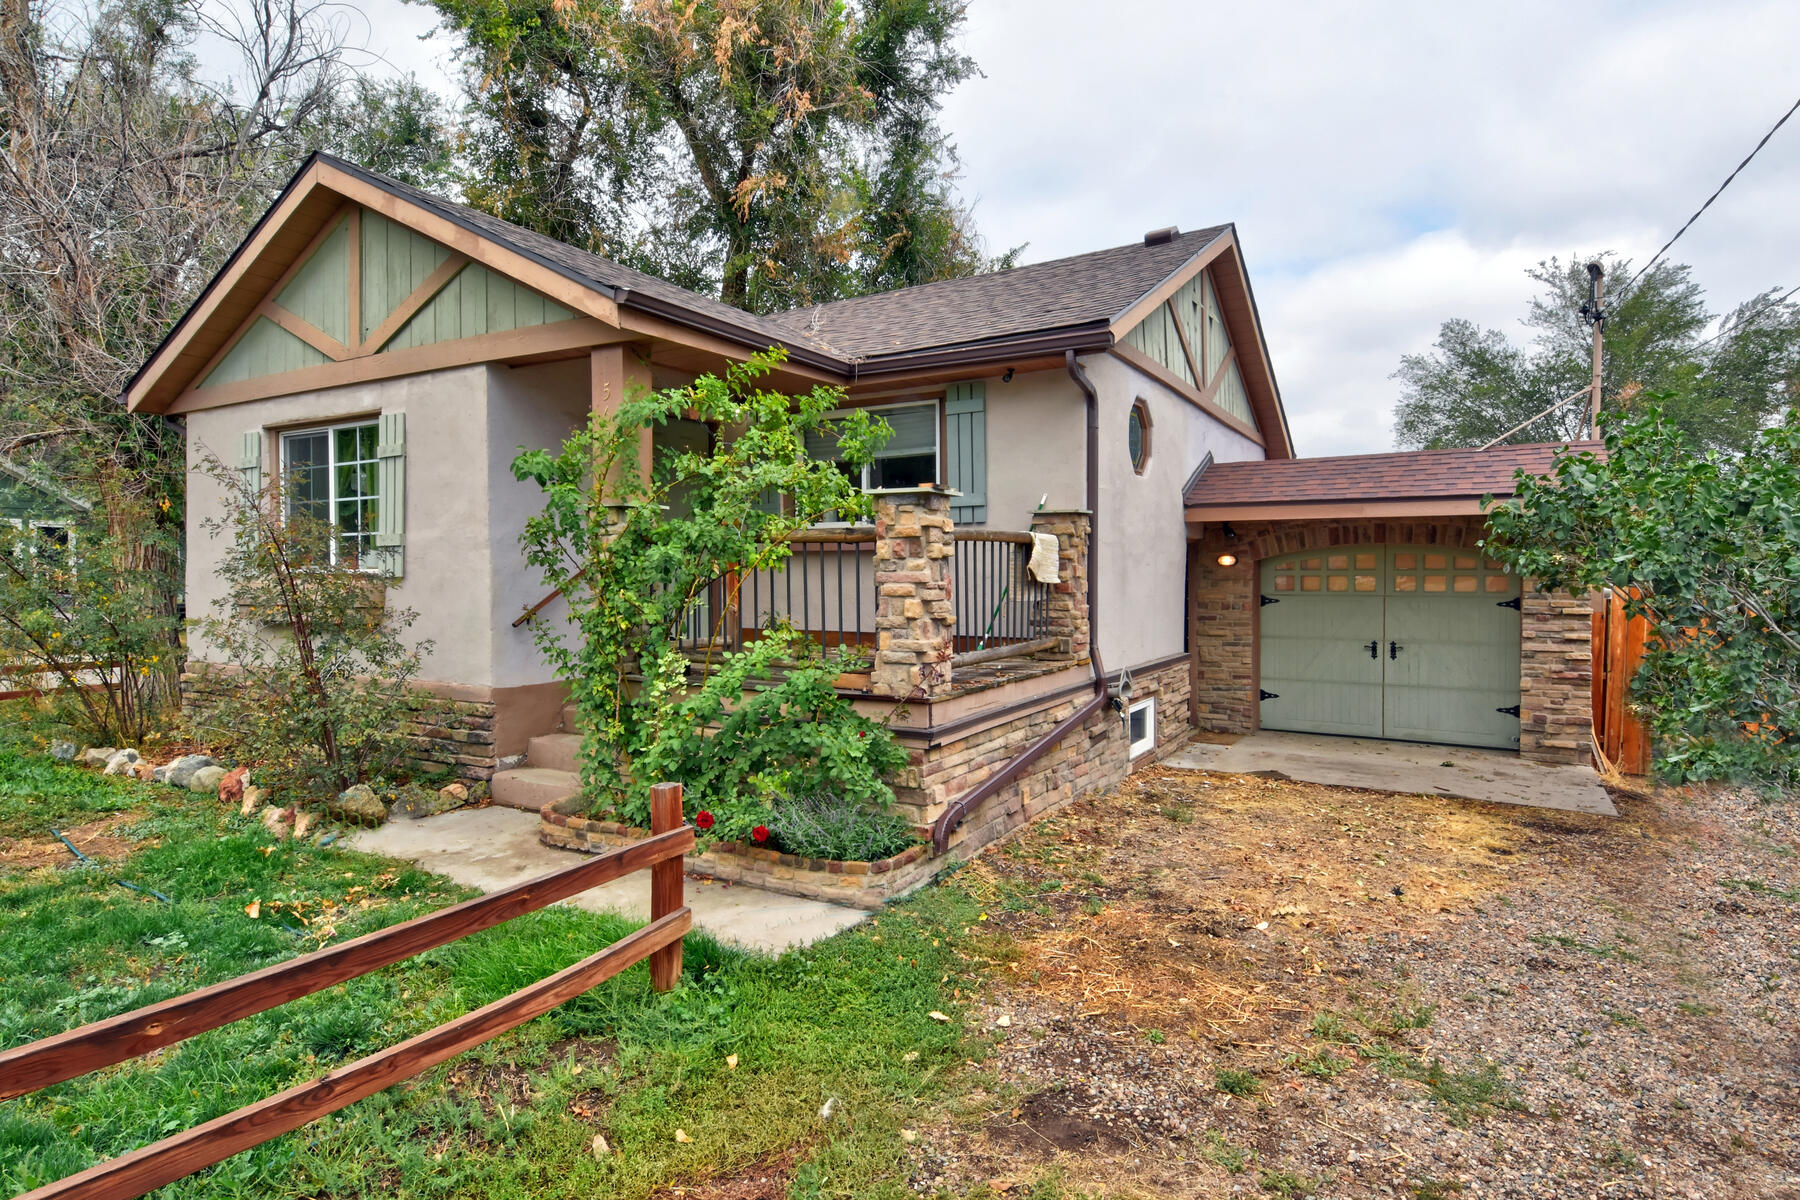 Single Family Homes for Sale at Wonderful Ranch Home On A Corner Lot 5637 W Virginia Ave Lakewood, Colorado 80226 United States